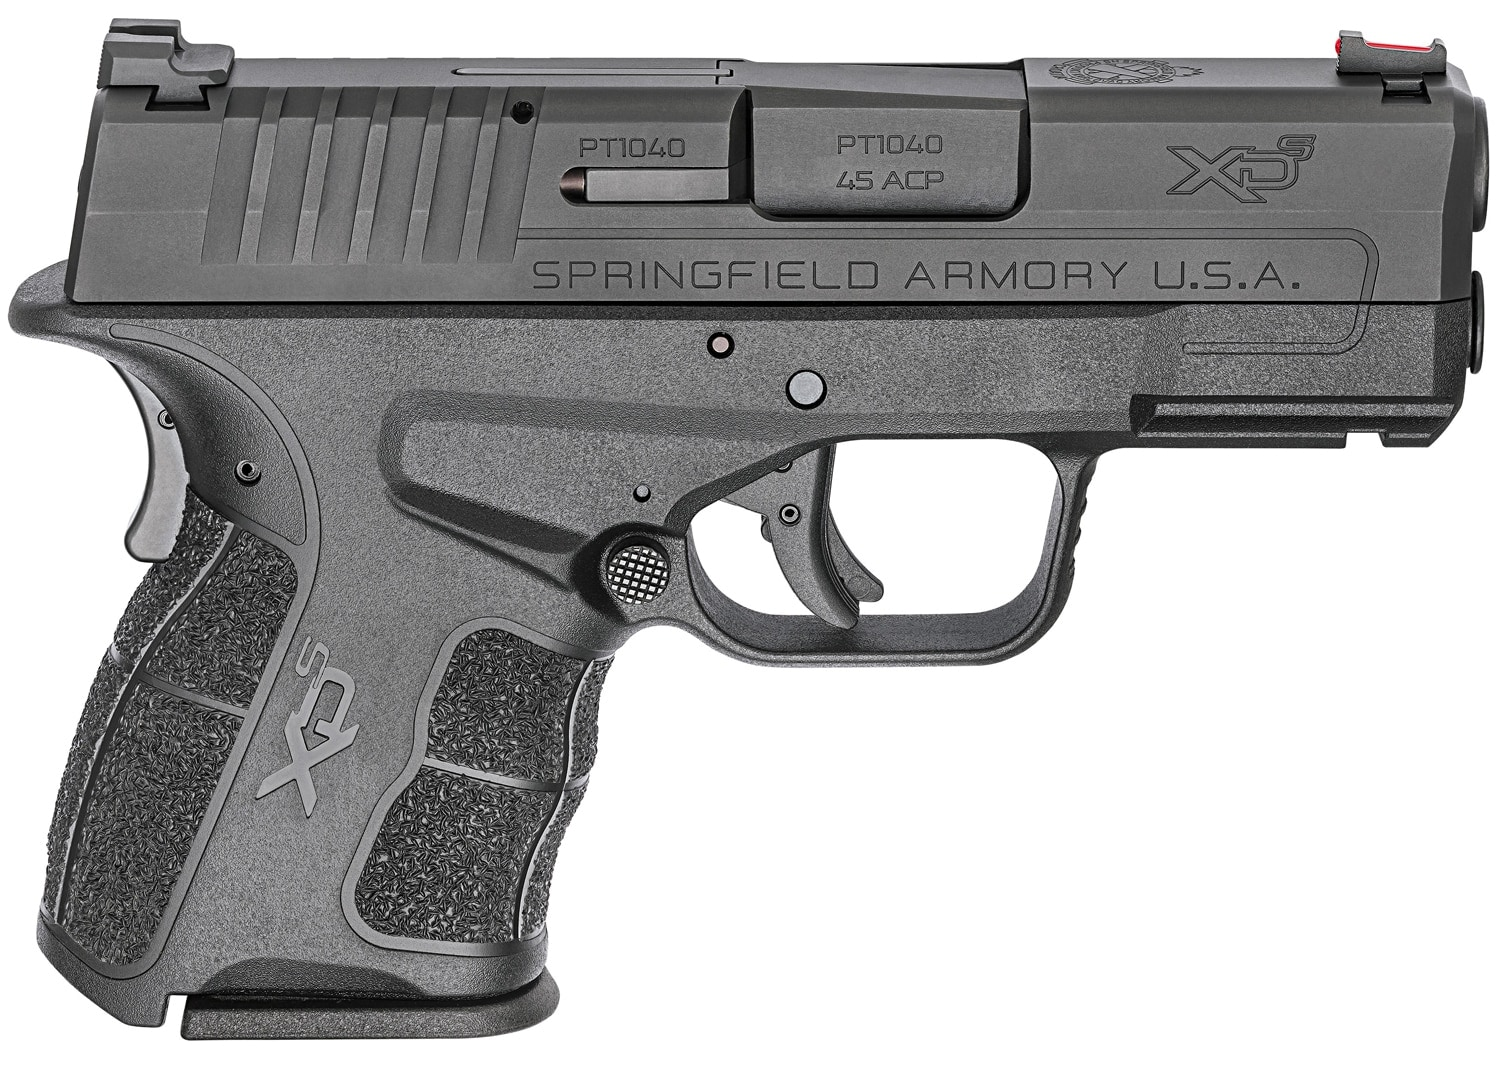 The Springfield XD-S Mod.2 pistol chambered in .45 ACP. (Photo: Springfield Armory)